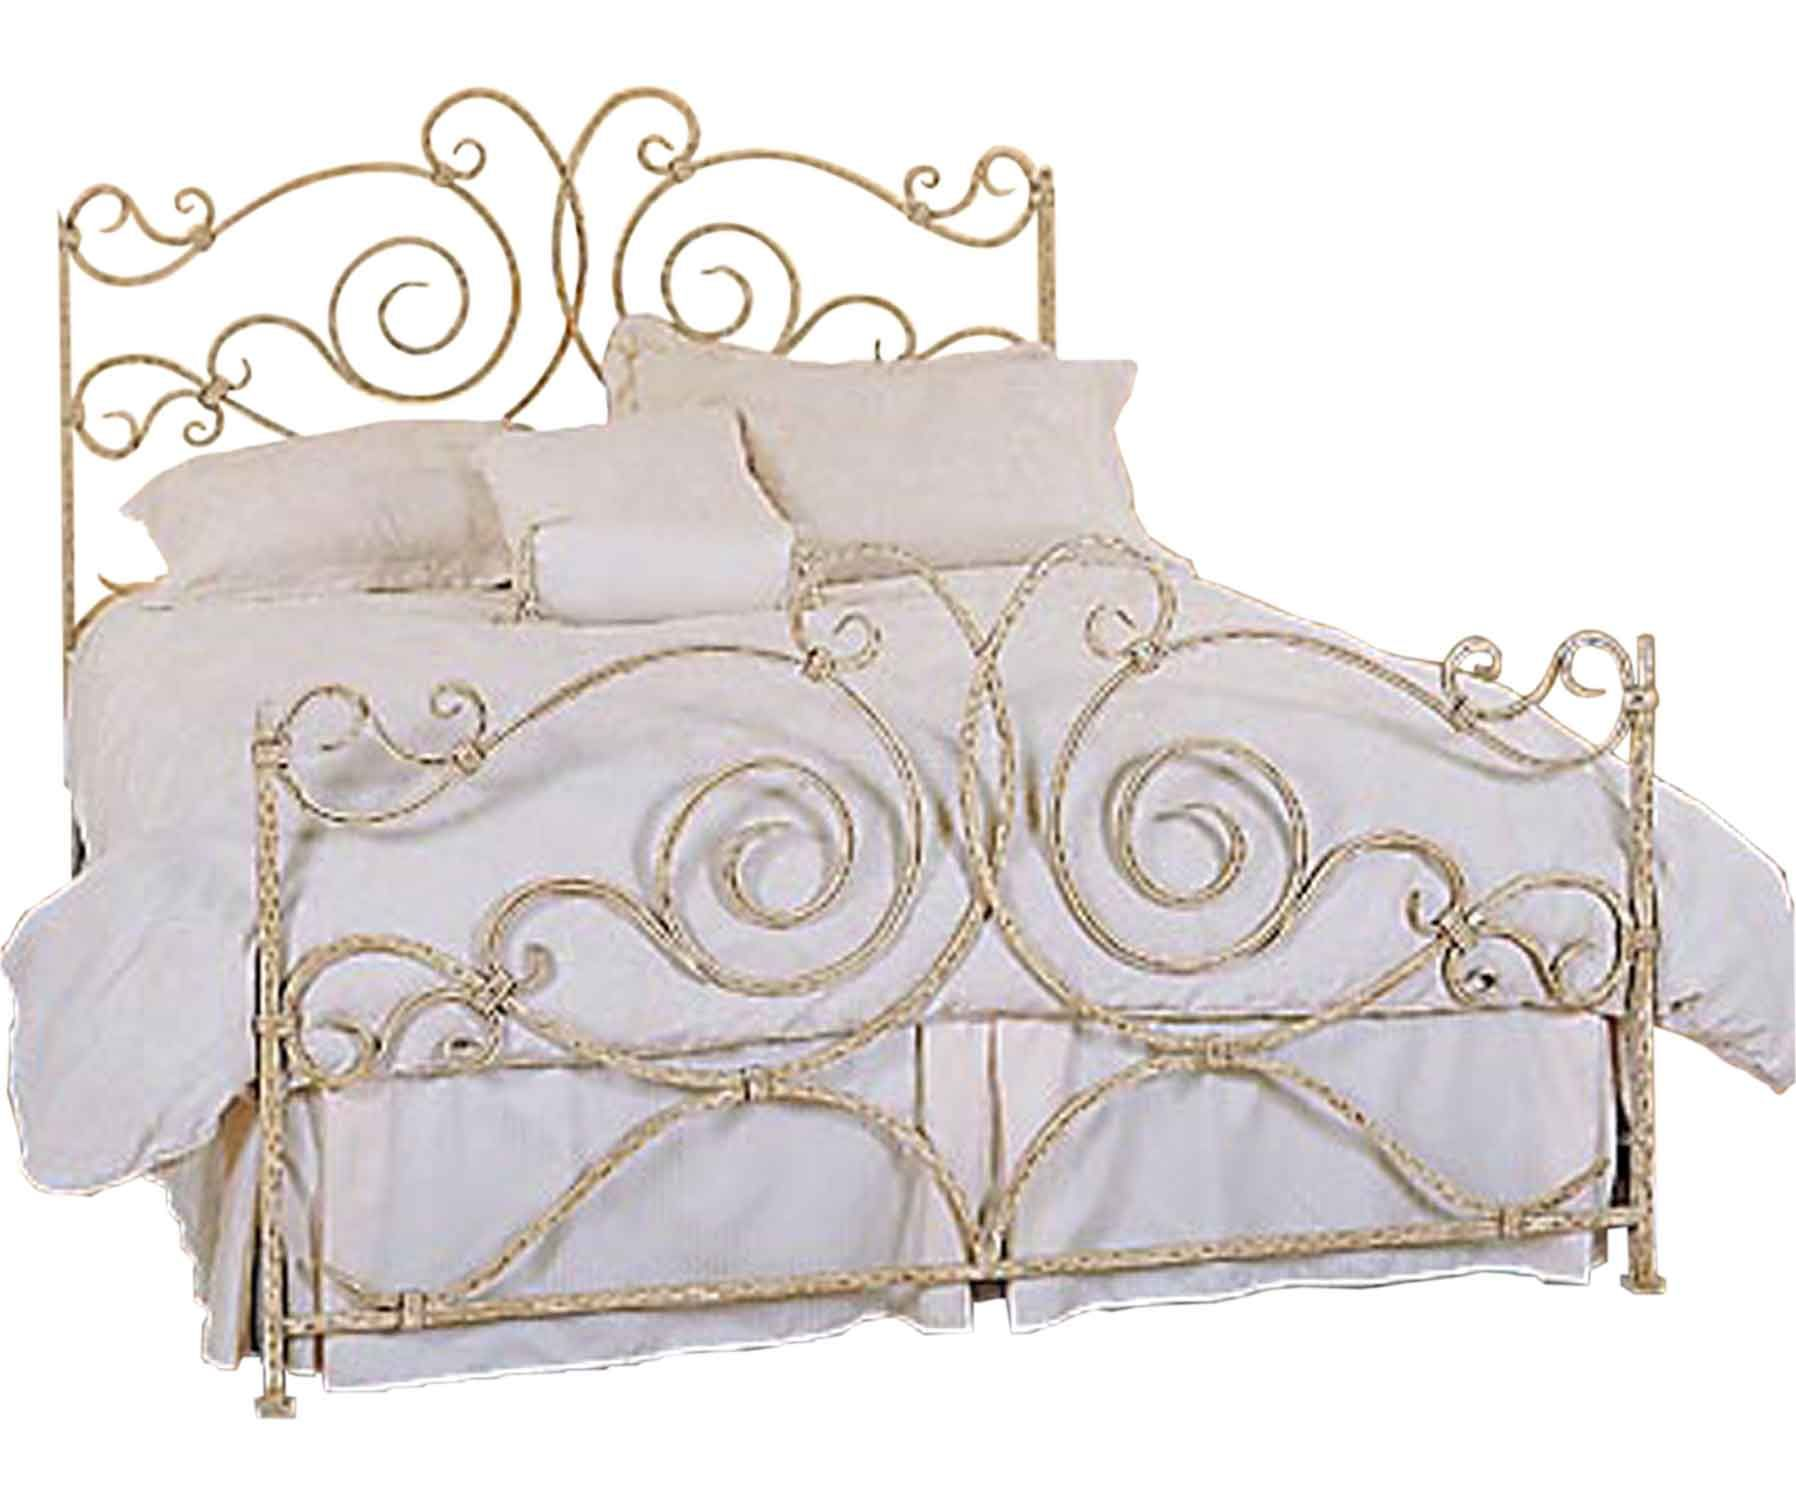 Wrought Iron Bed Google Images Cama De Ferro Estrado De Cama